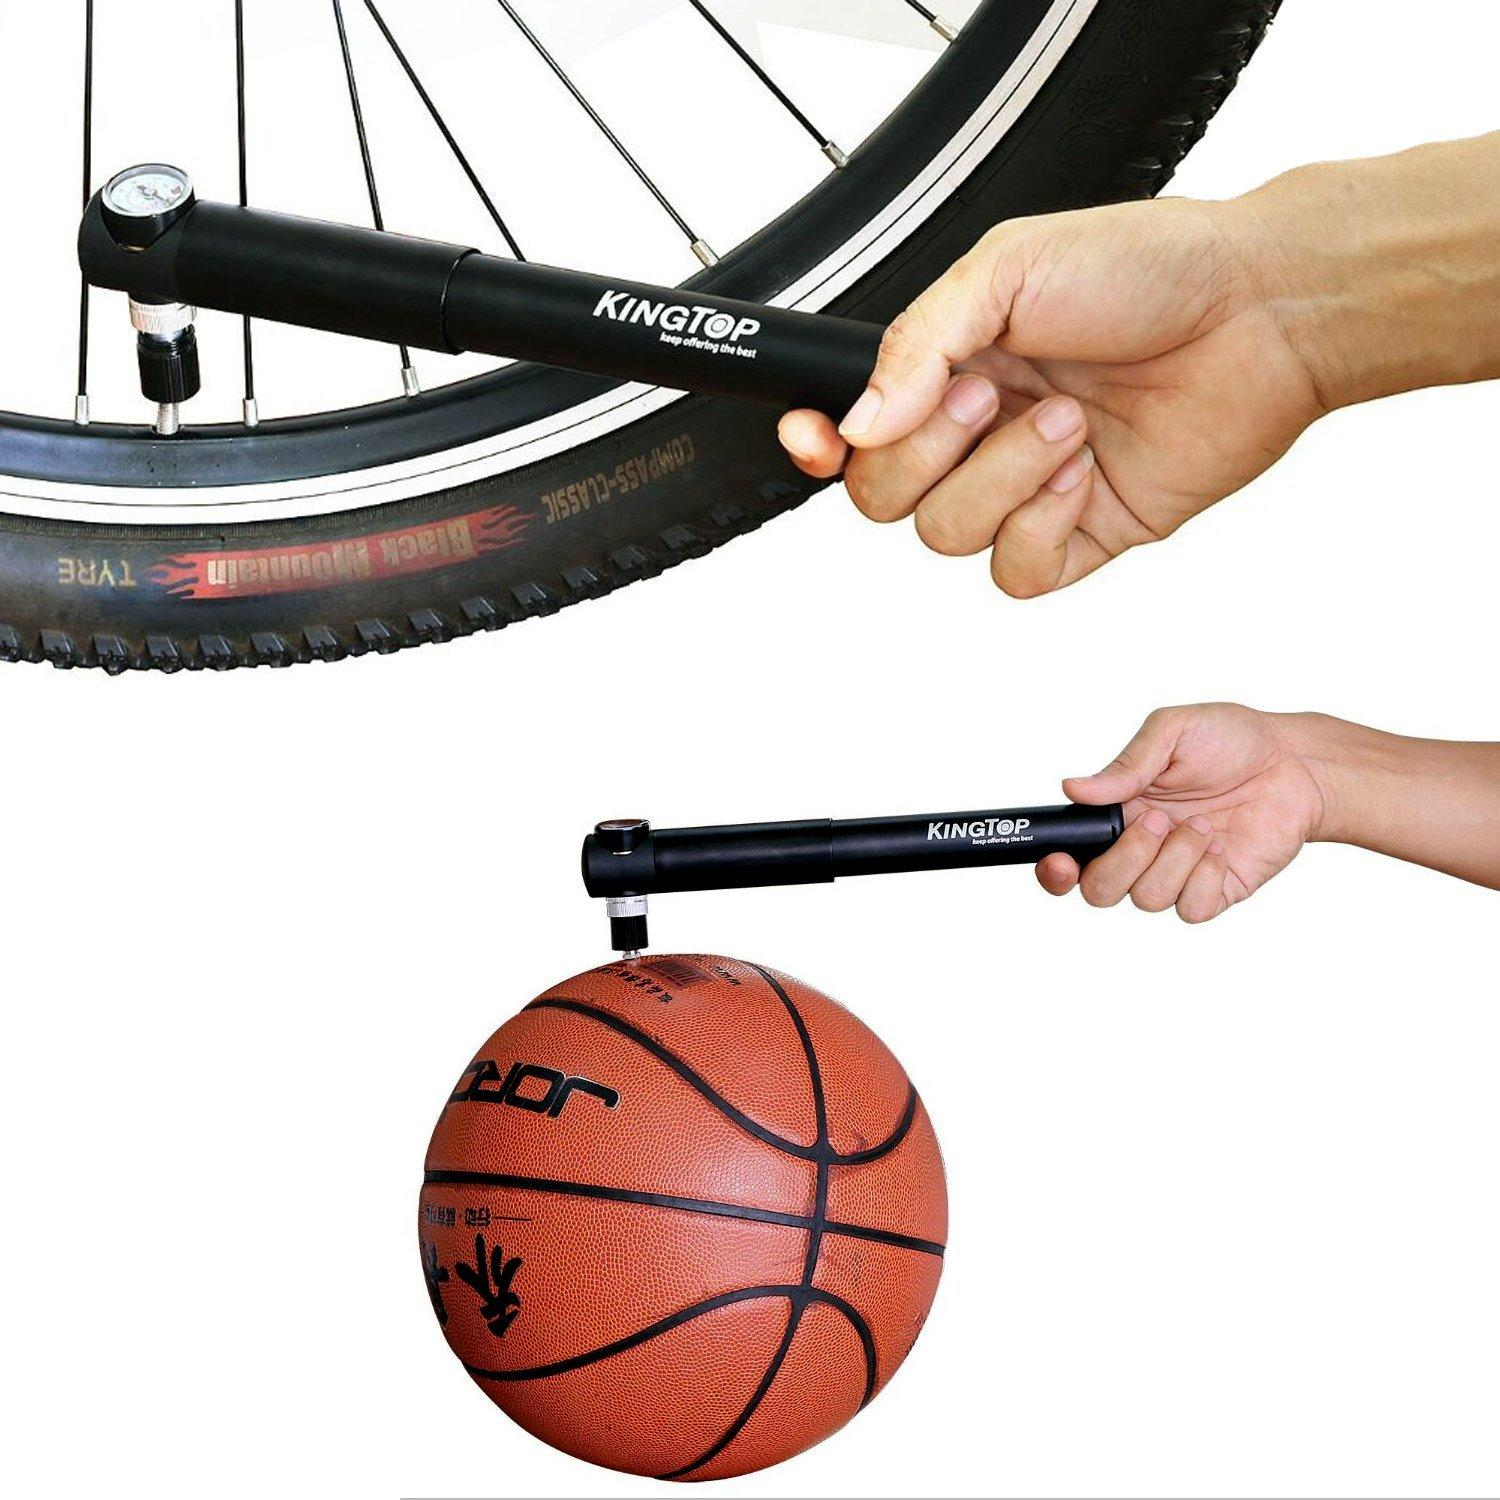 Kingtop Portable Bike Pump